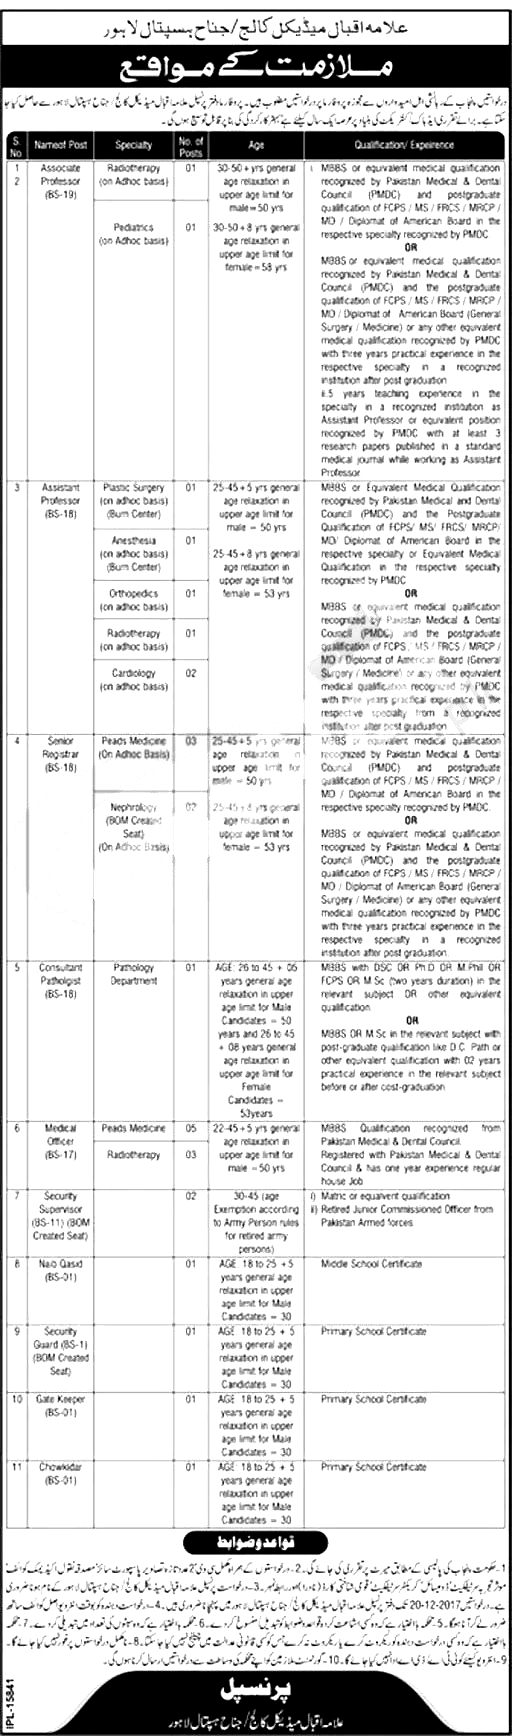 Allama Iqbal Medical College AIMC Lahore Jobs December 2017 Medical Officer Interview Schedule Required Experience